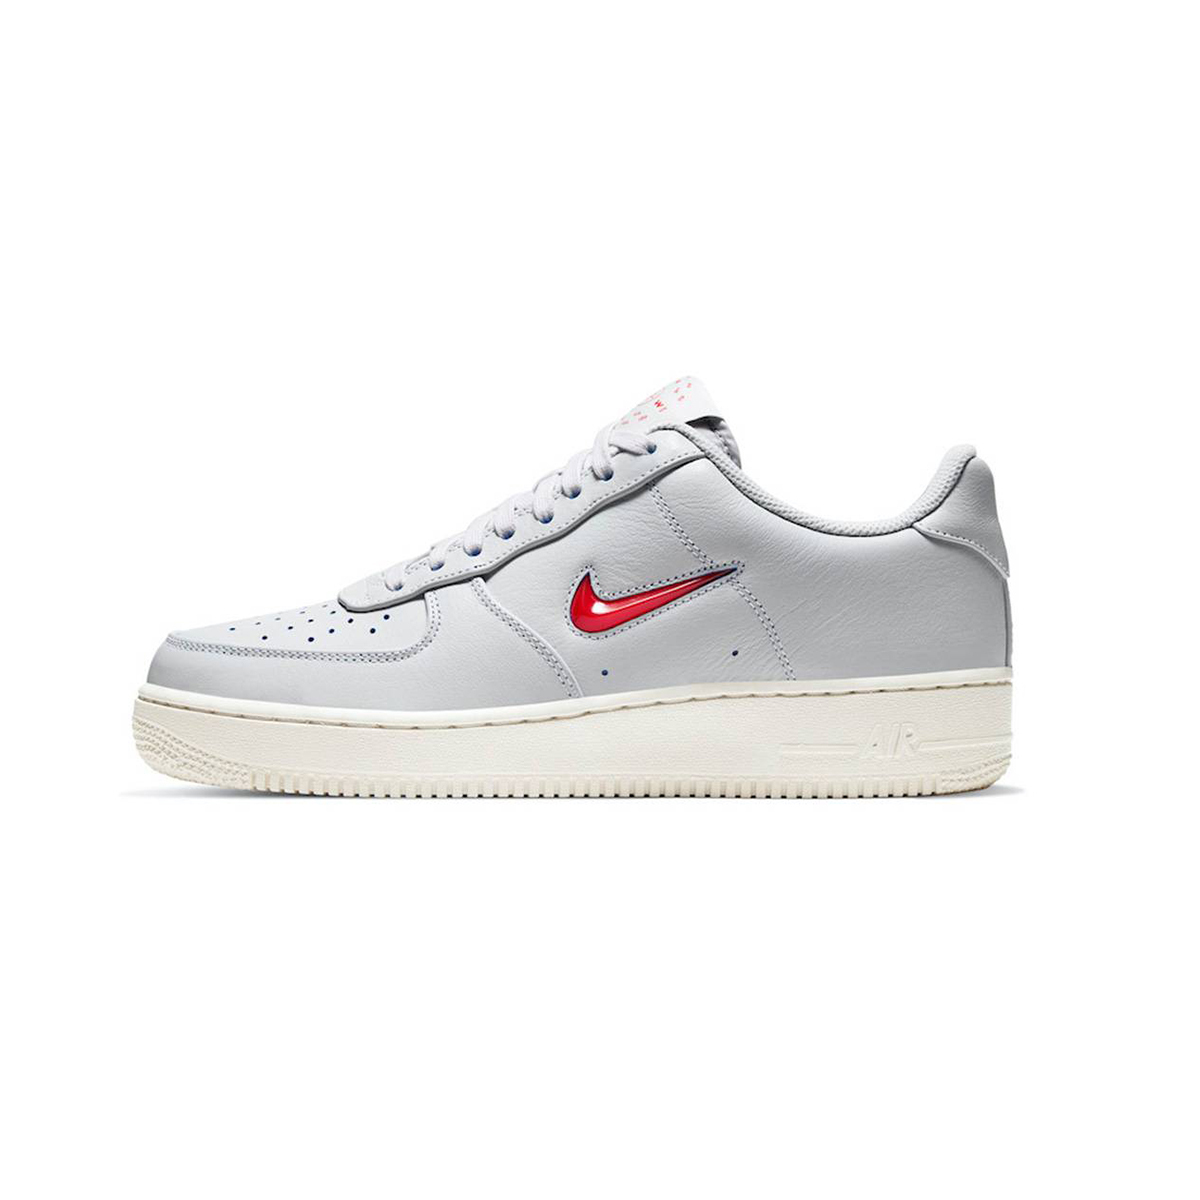 Primary image for Nike Air Force 1 '07 (Vast Grey/ Challenge Red/ Home and Away) Men 8-13